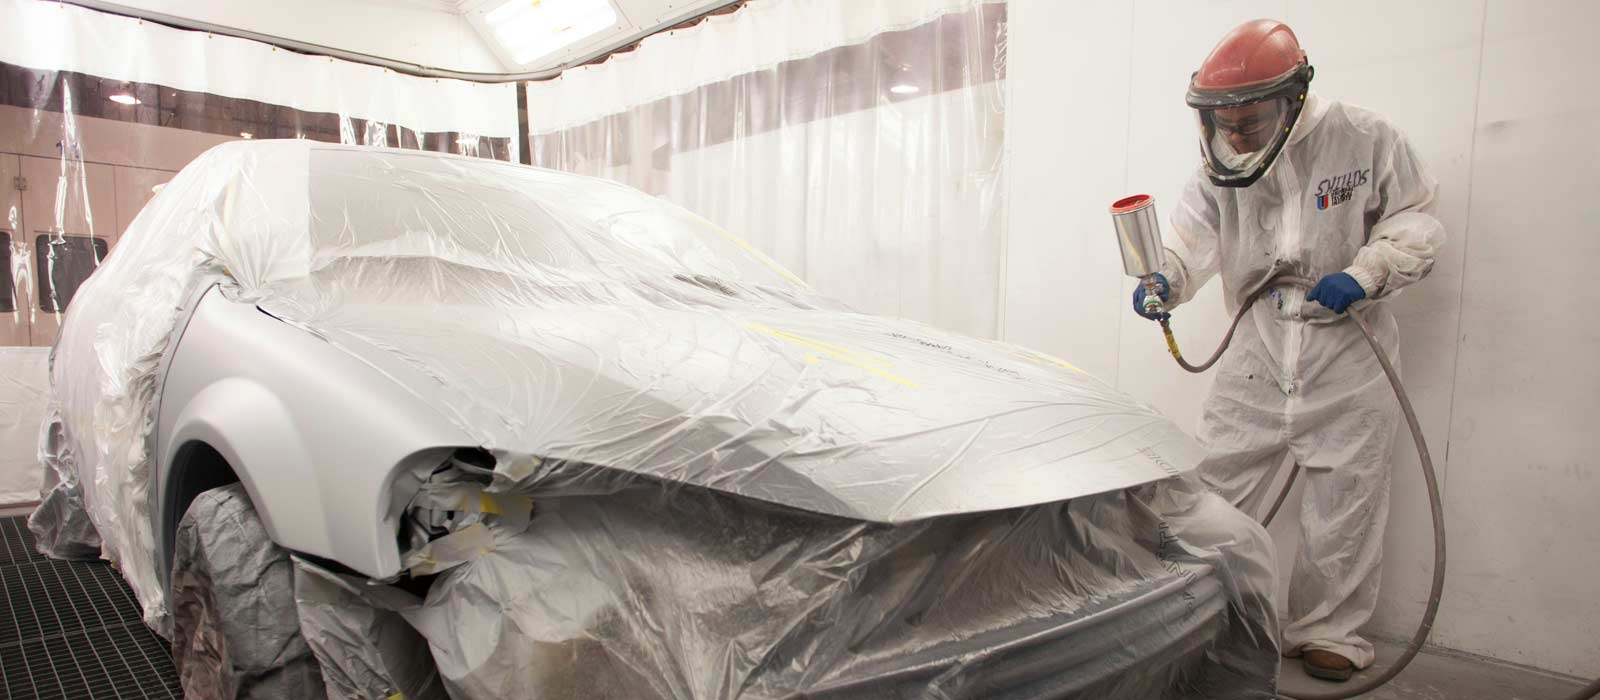 What Damages Car Paint? 13 Things to Look Out For